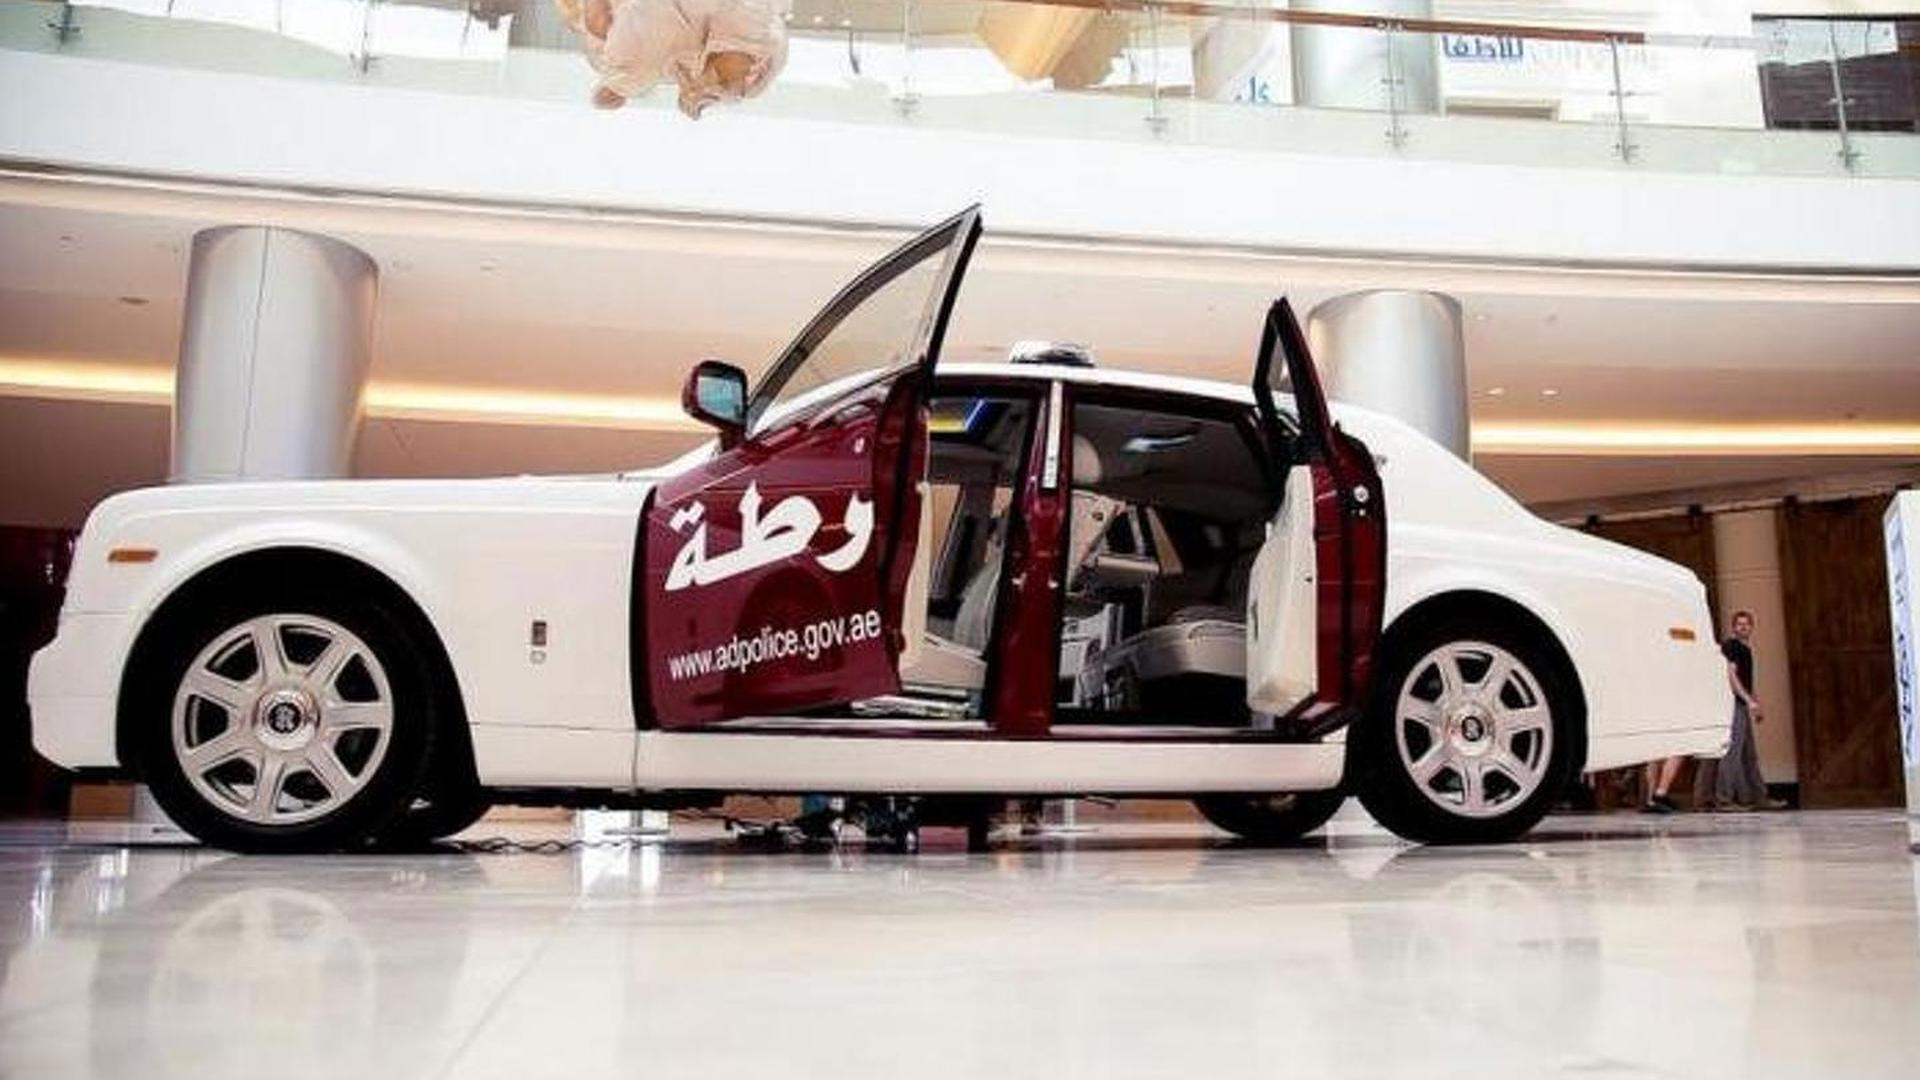 Rolls-Royce Phantom joins Abu Dhabi police fleet